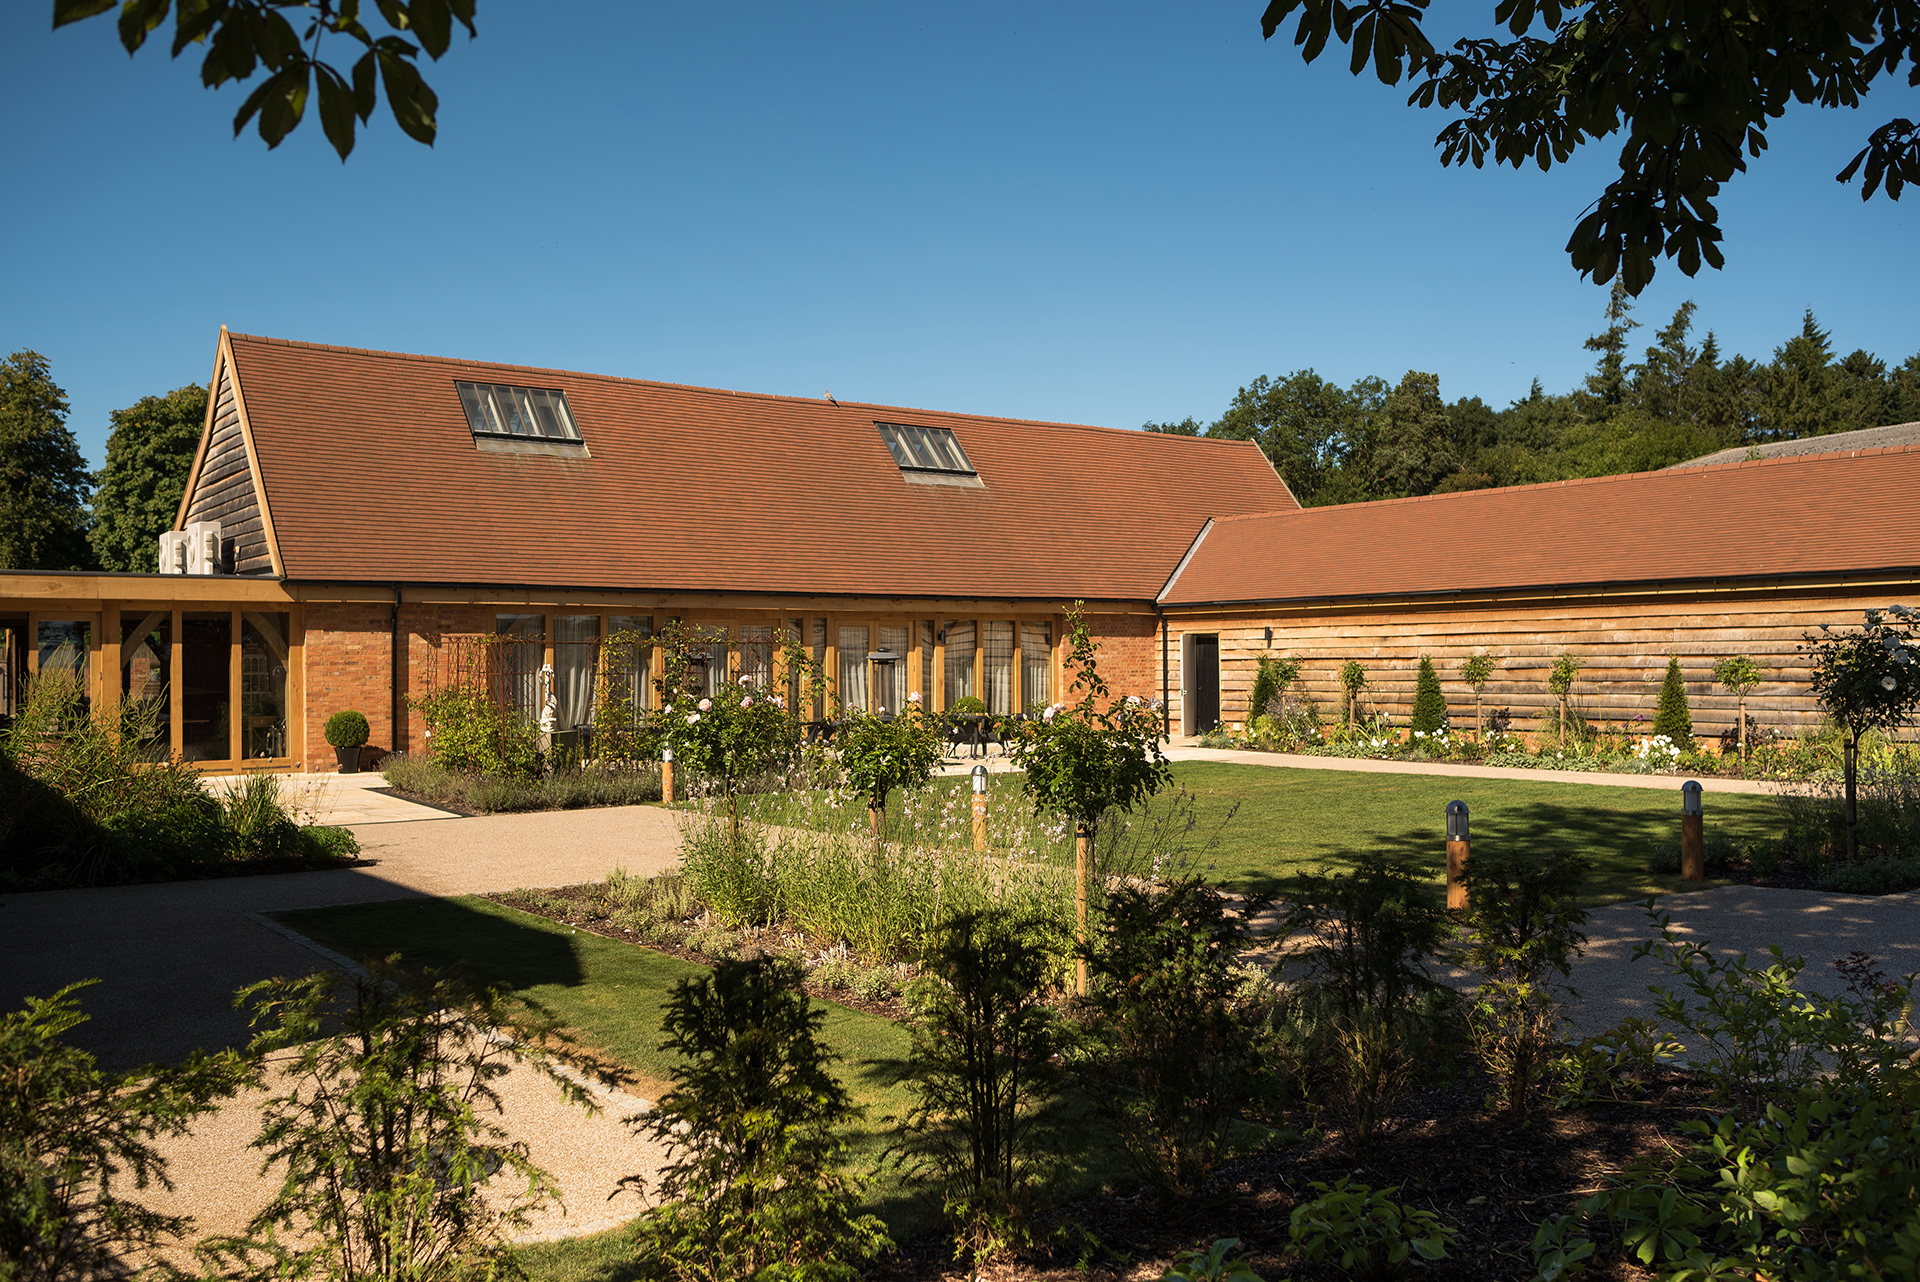 Bassmead Manor Barns is one of the finest wedding venues in Cambridgeshire